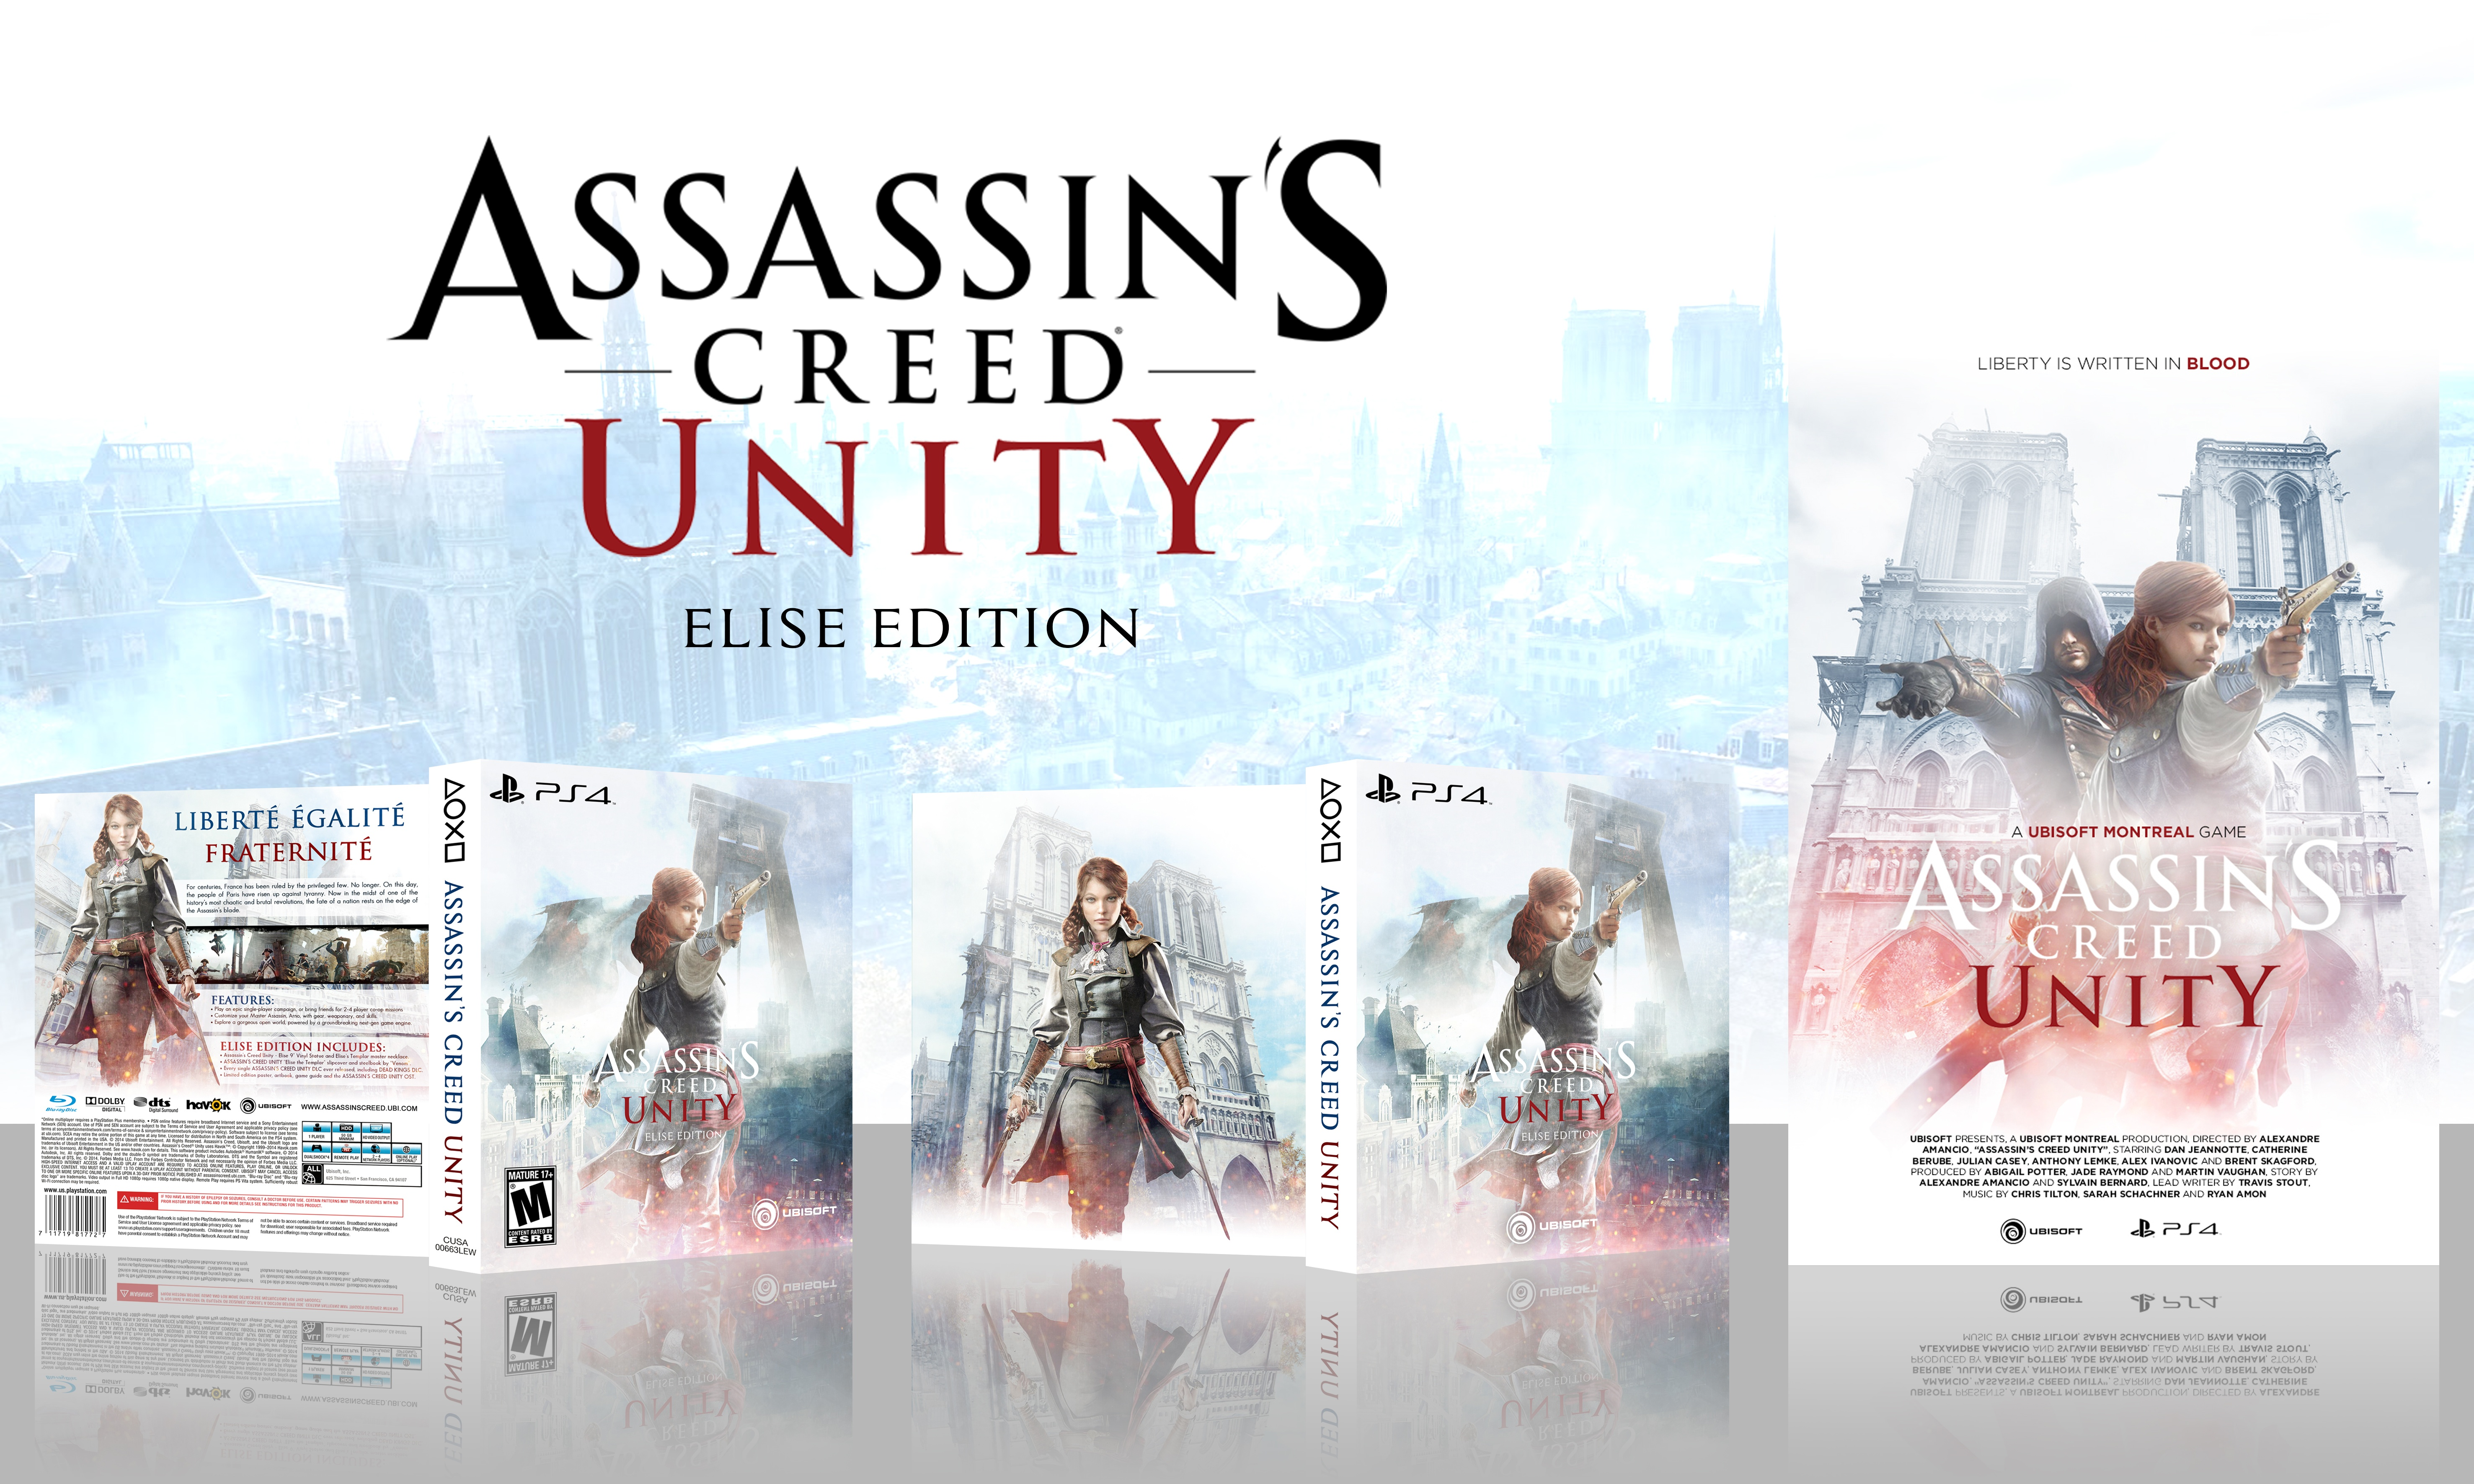 Assassin S Creed Unity Elise Edition Playstation 4 Box Art Cover